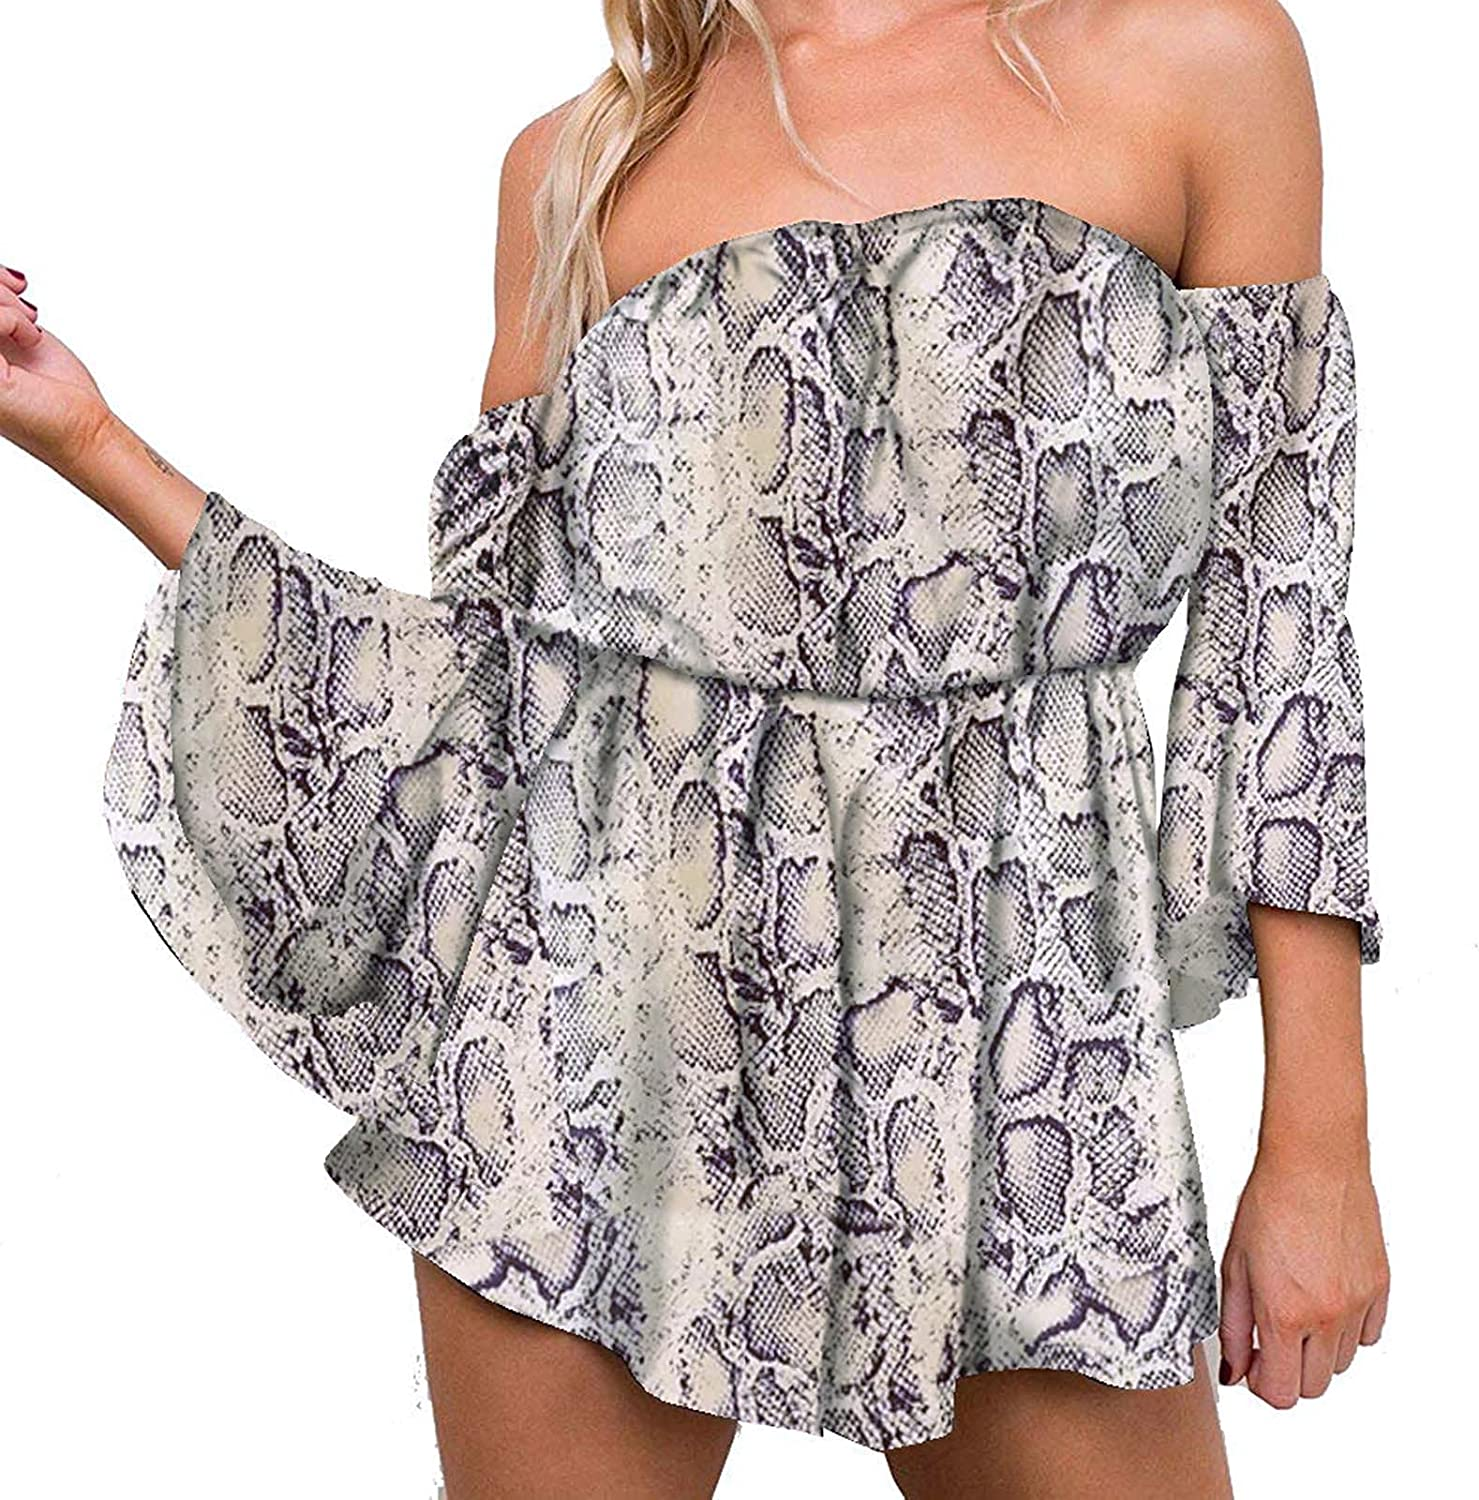 Afelkas Jumpsuit for Women Casual Summer Floral Print Flared Sleeve Rompers Sexy Tube Tops Strapless one-Piece Pants